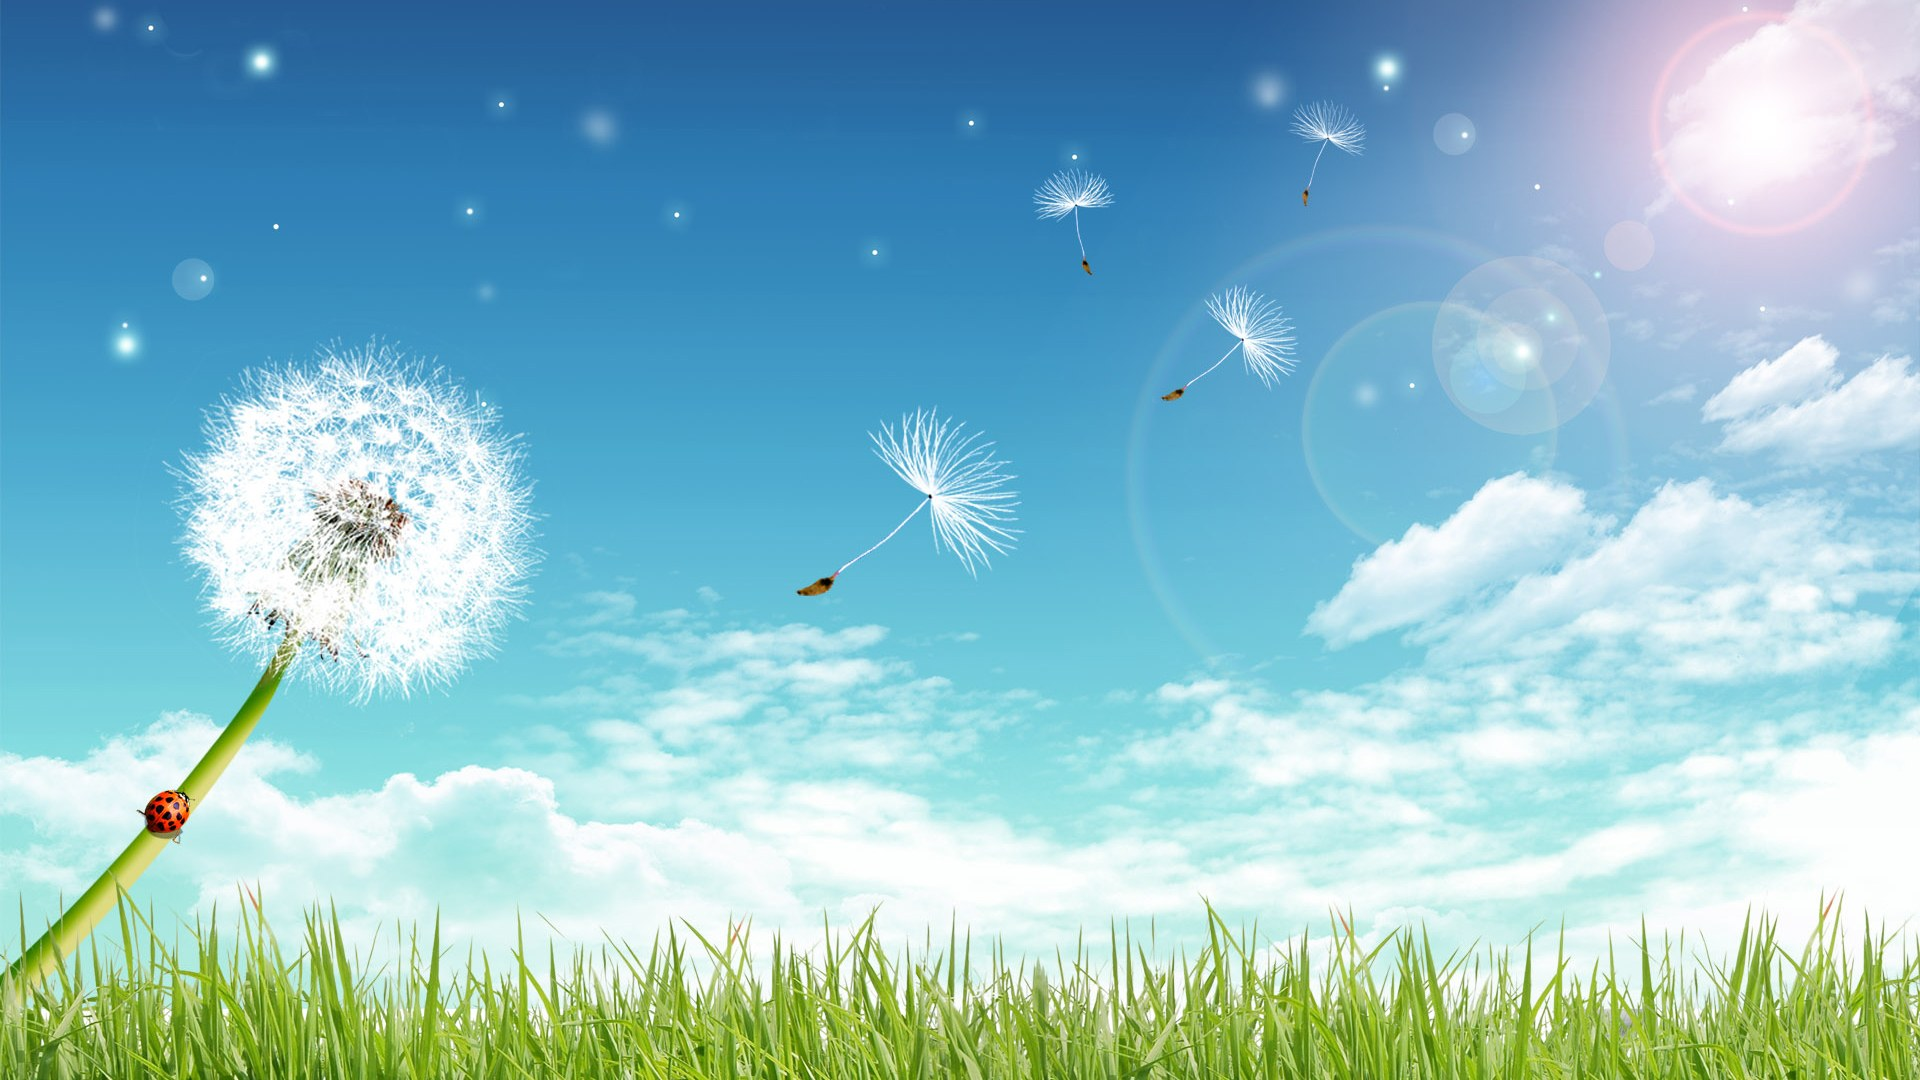 dandelion Grass photo Sky sun clouds download wallpapers for 1920x1080